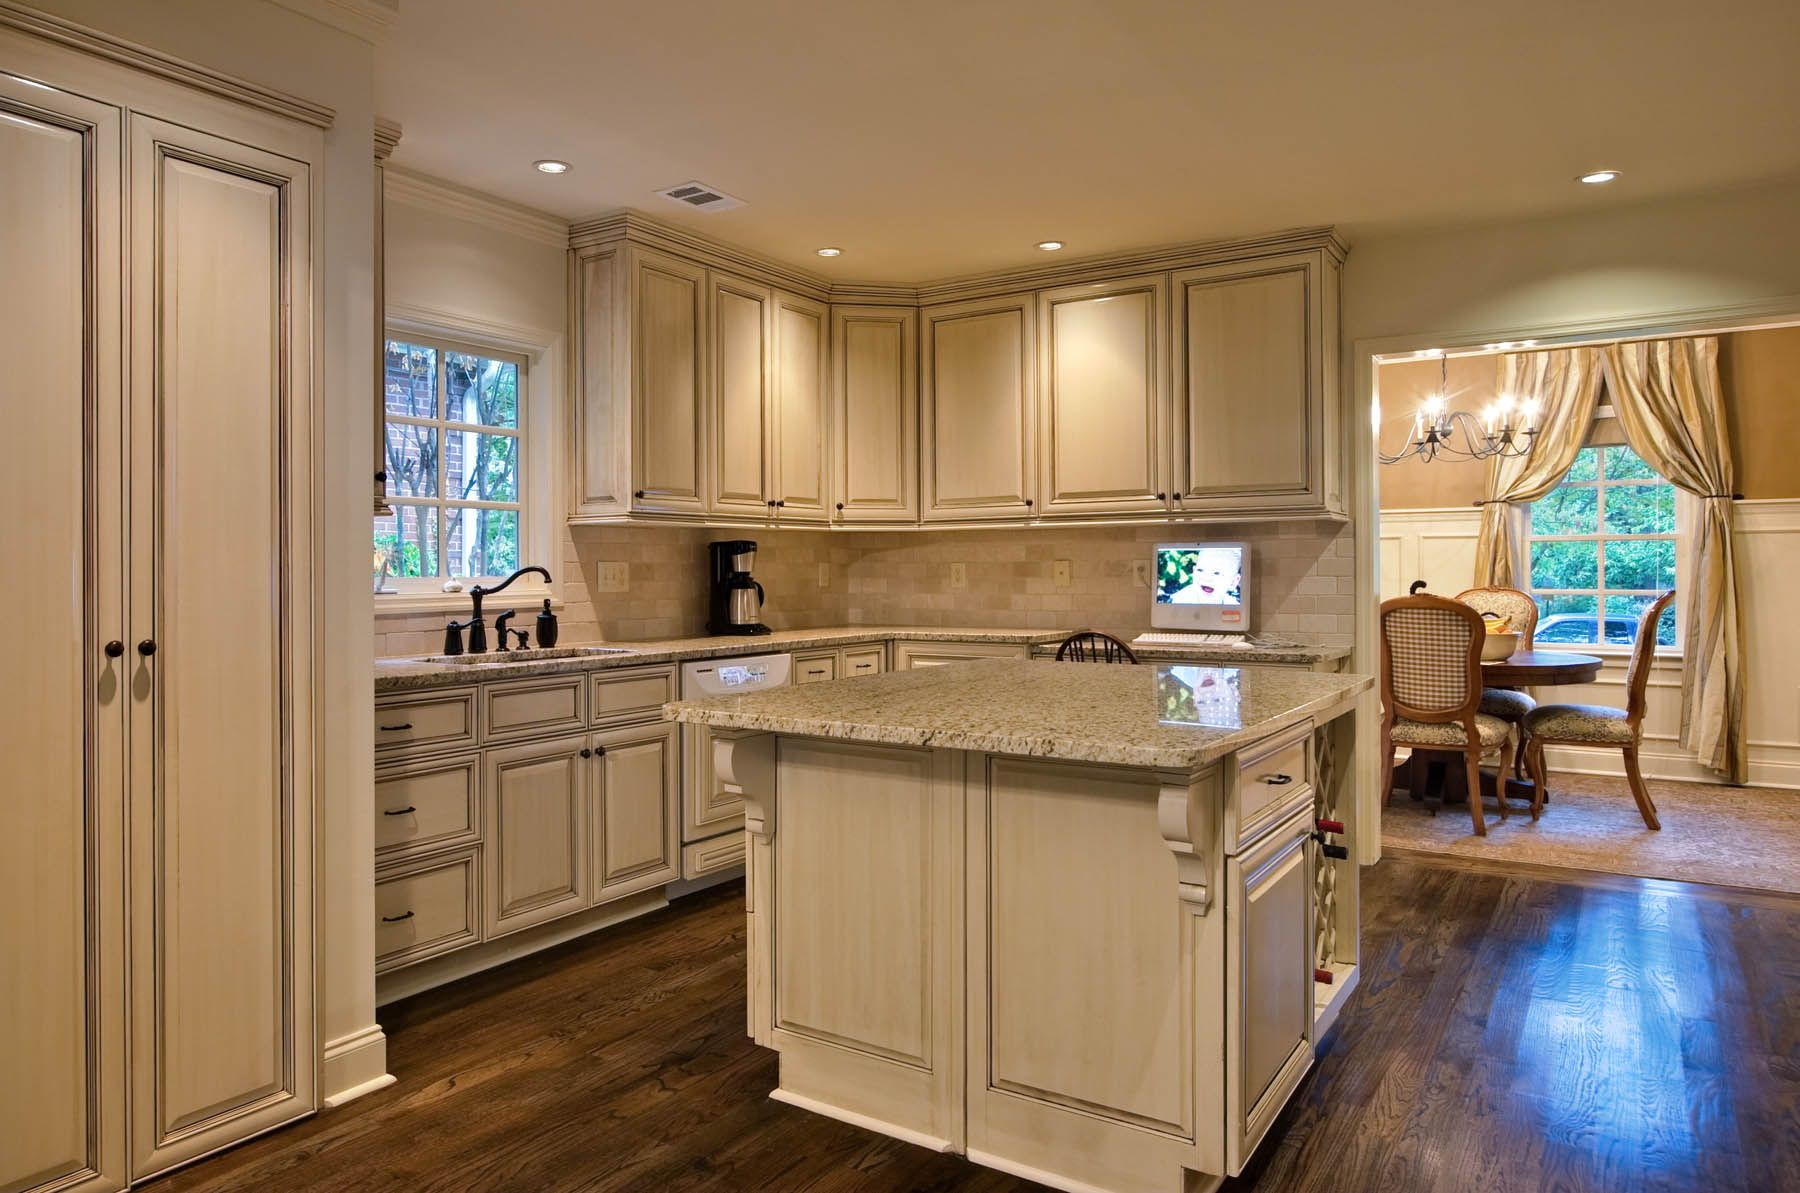 mobile home countertops mobile home kitchen remodel Images About Mobile Home Remodeling Ideas On Pinterest Refinish Kitchen Counters